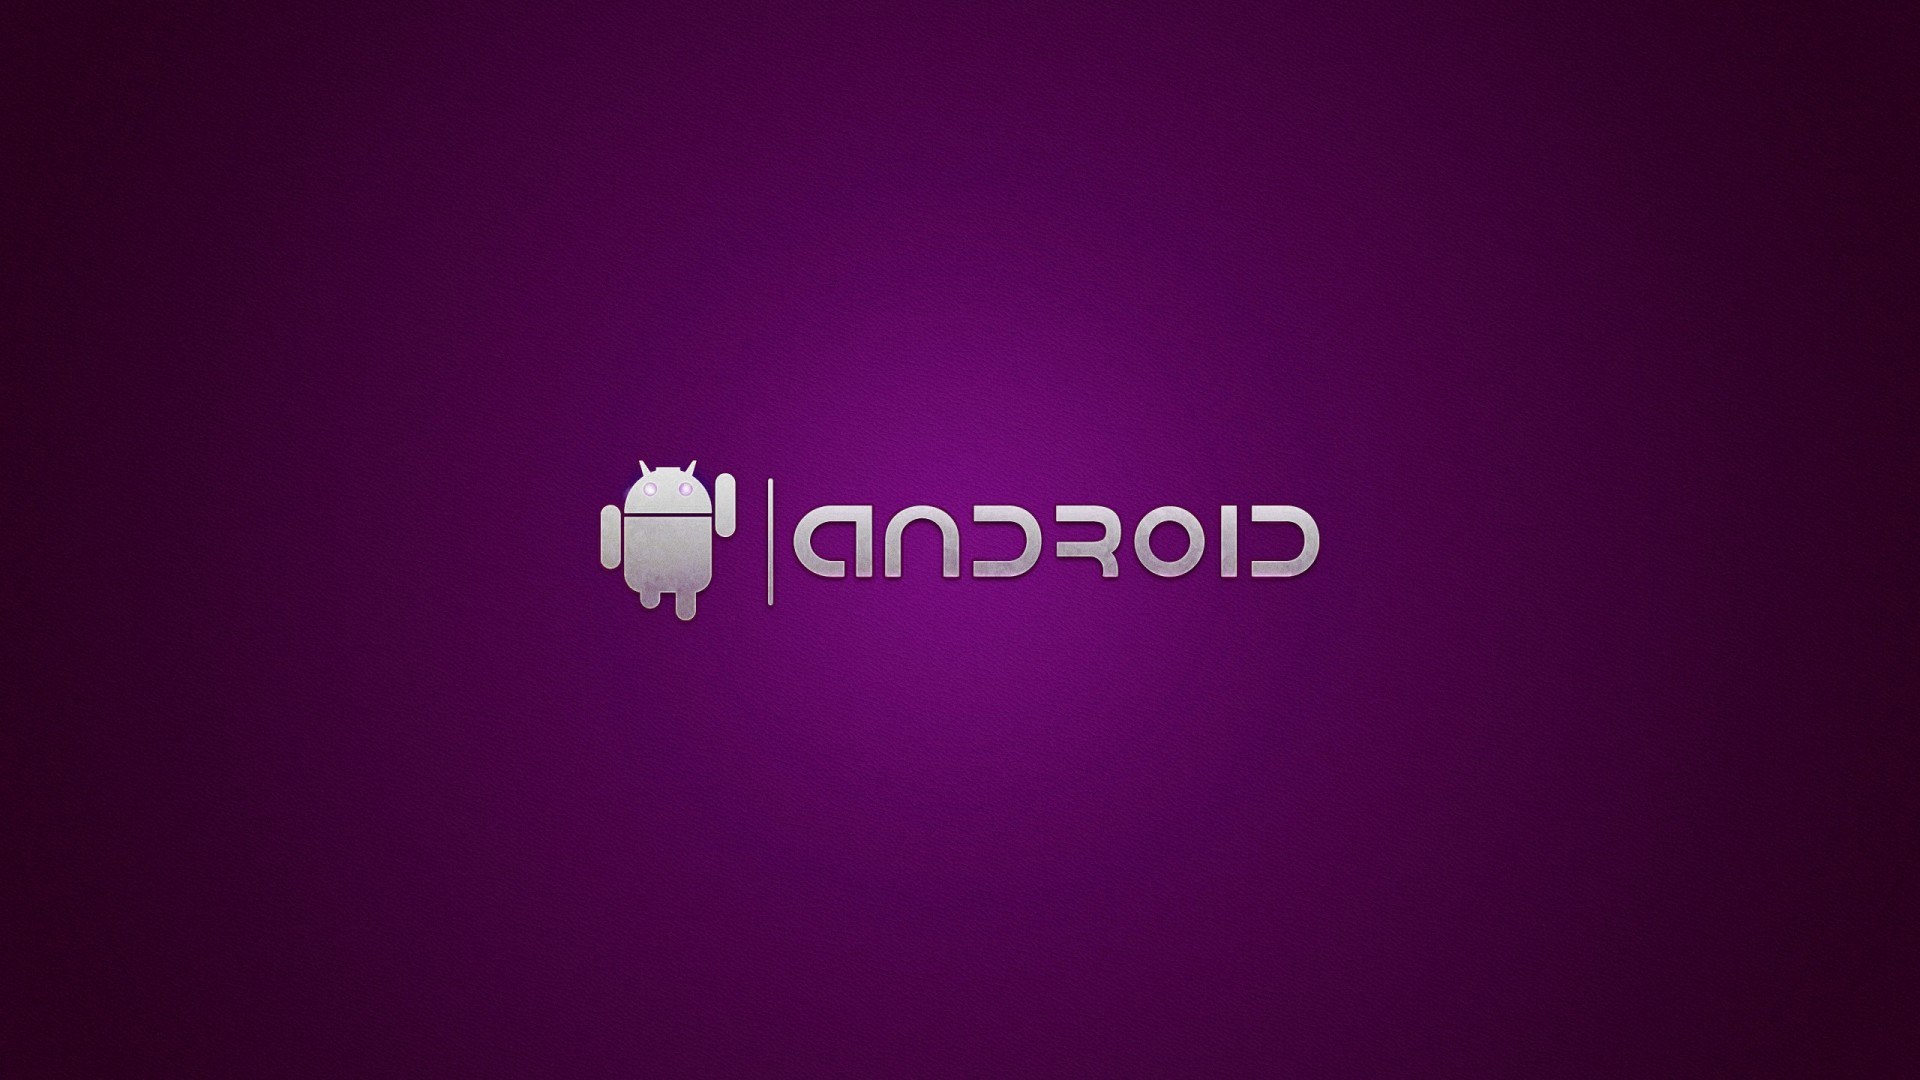 Android-Logo-Widescreen-Background-HD-Wallpaper